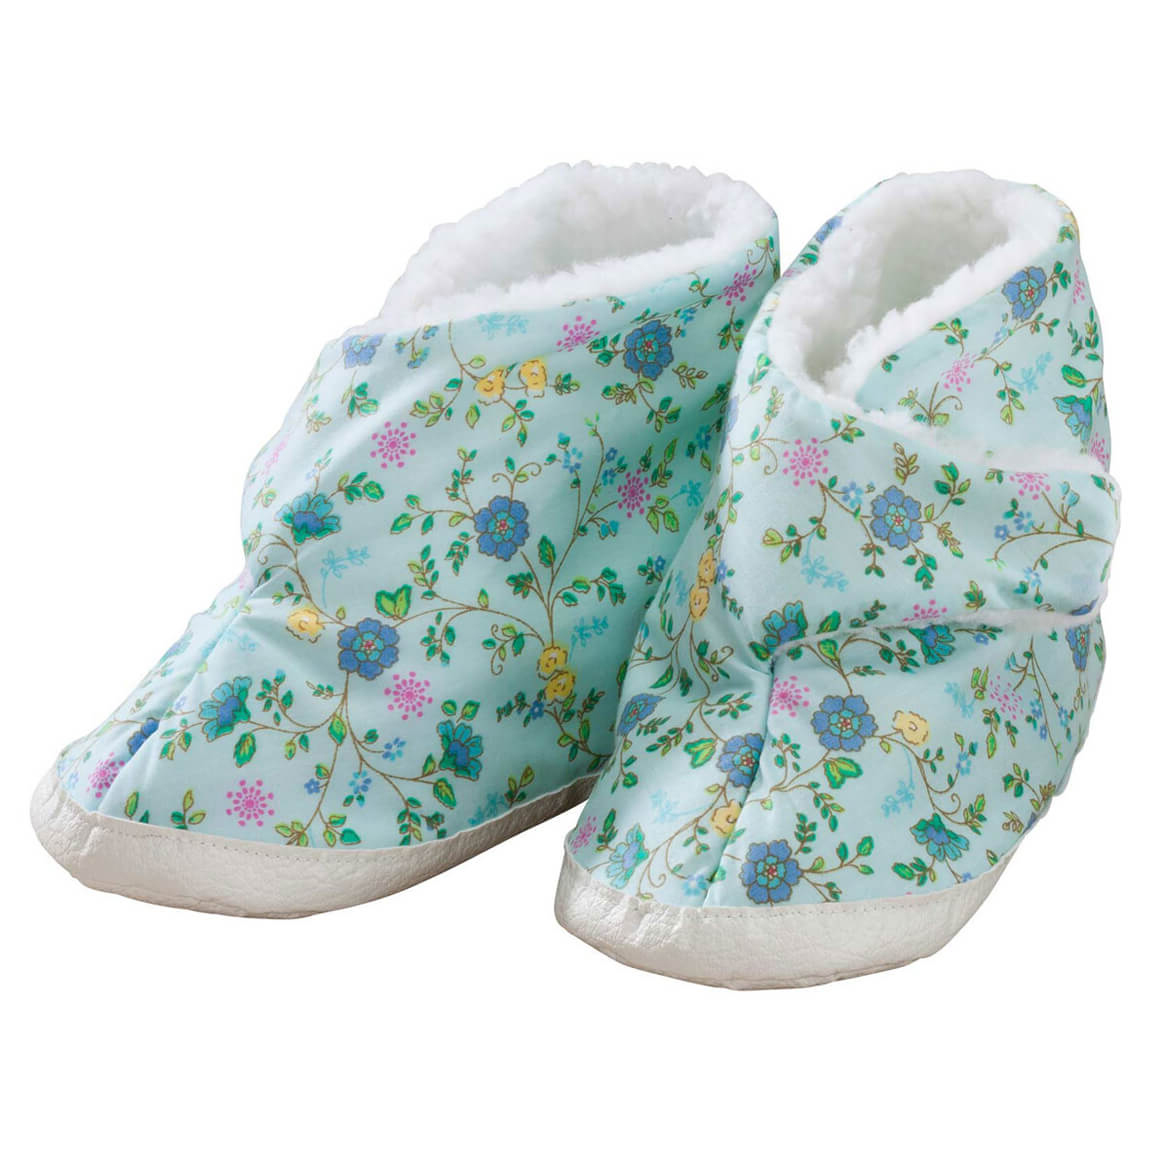 7ab8205d9600 Women s Edema Slippers - Slippers for Swollen Feet - Walter Drake